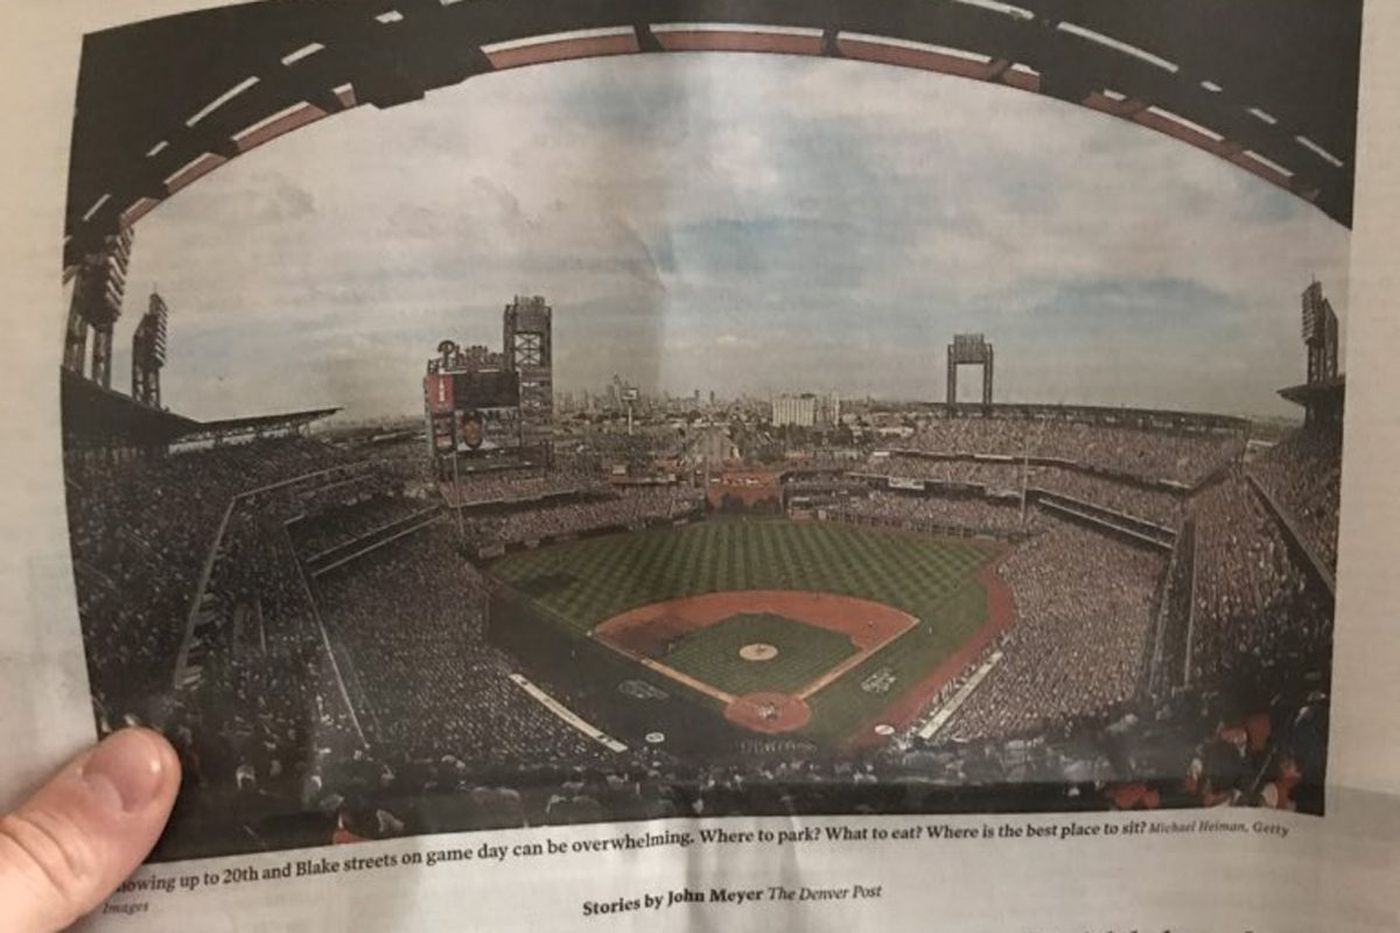 Denver Post mistakenly features Citizens Bank Park instead of Coors Field